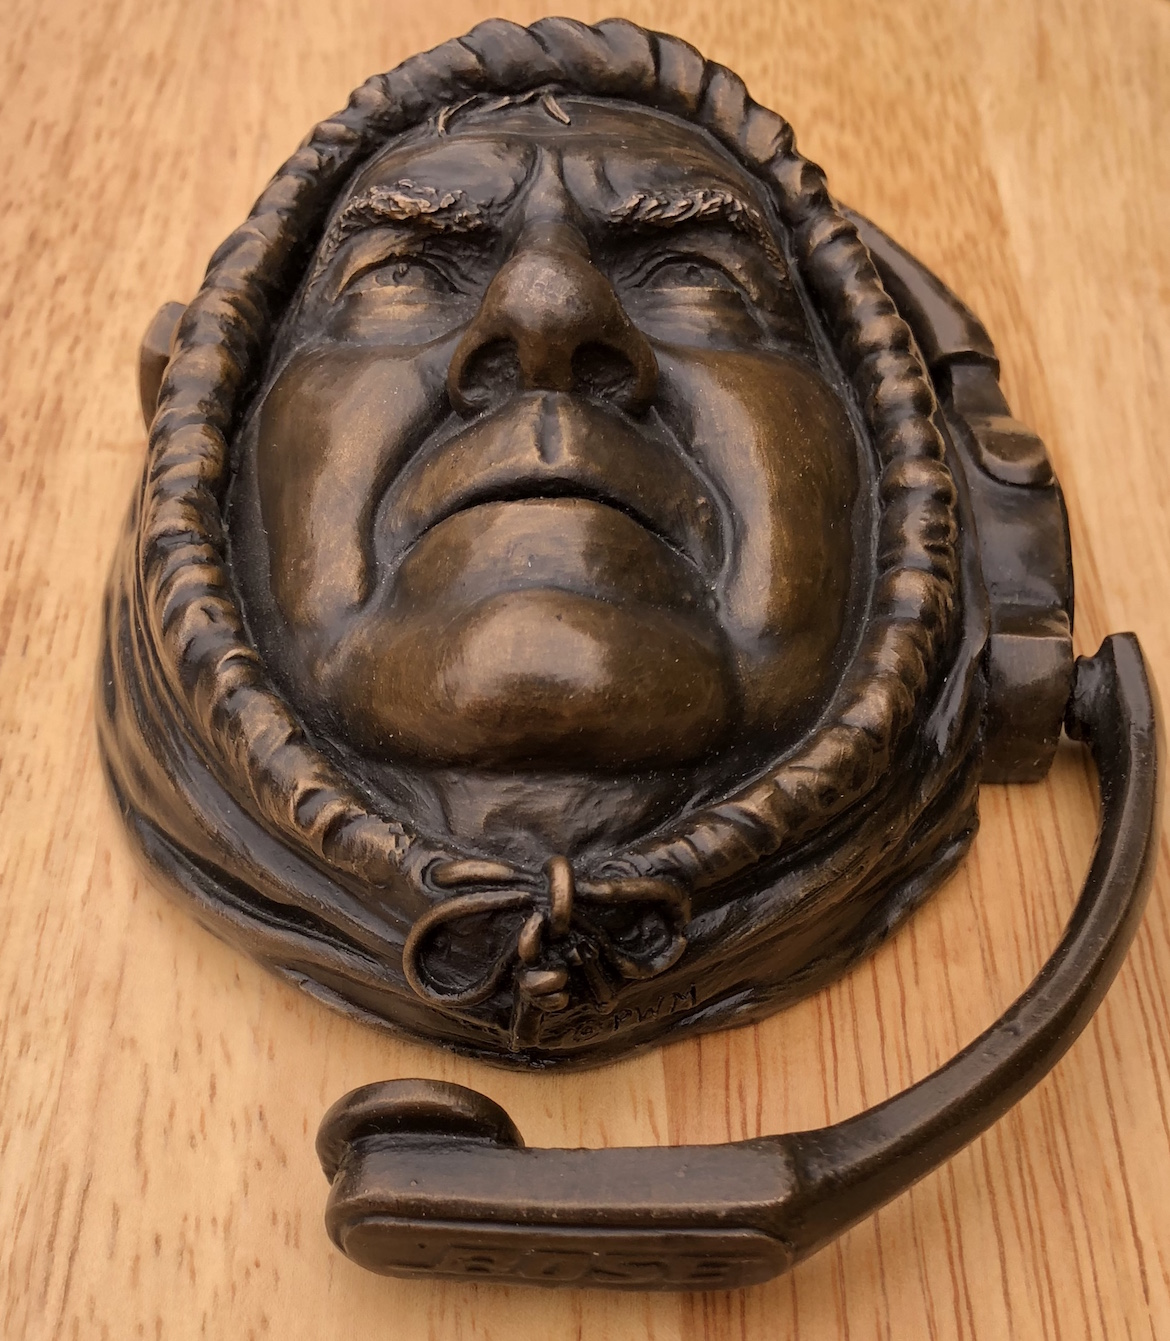 ... Palmer Murphy\u0027s Bill Belichick door knocker. (Courtesy of the artist) : bill door - pezcame.com